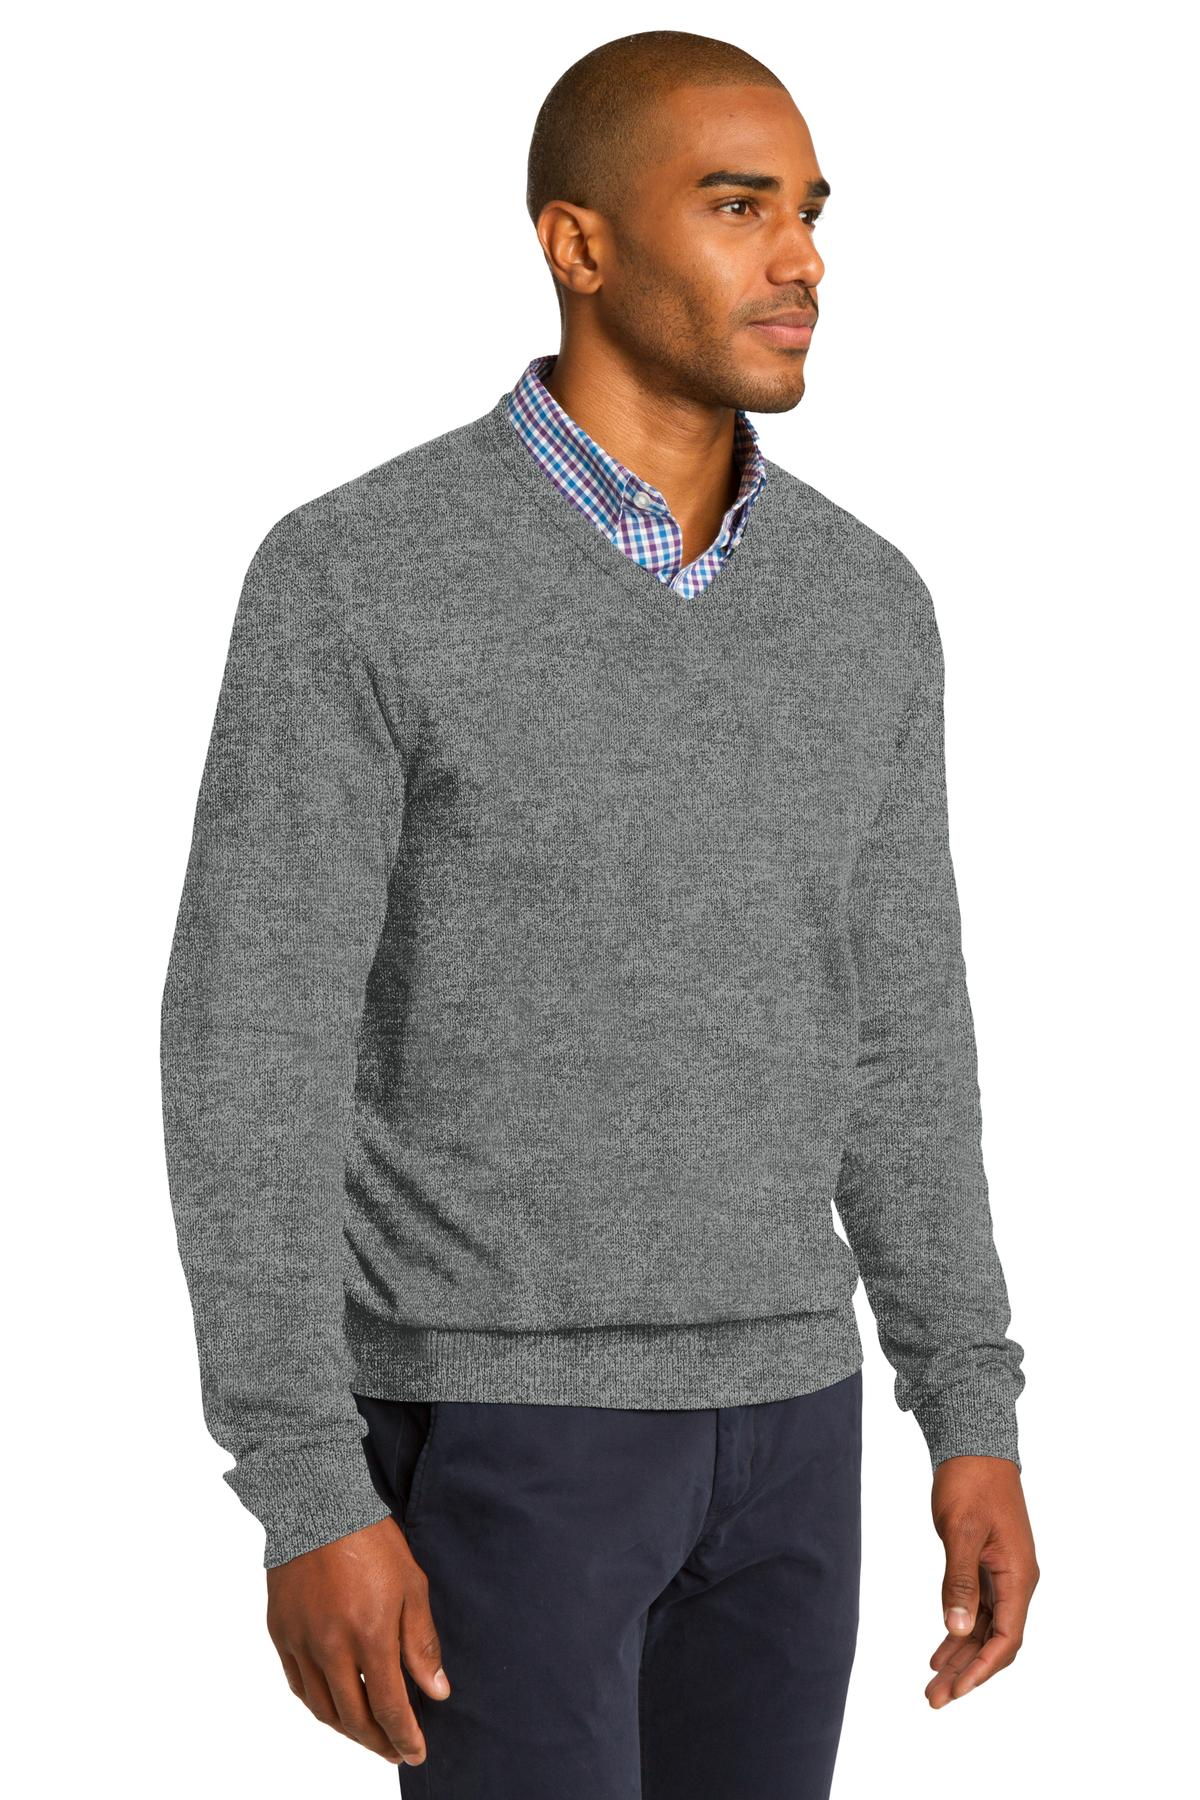 Mens V,Neck Sweater , RCG1340